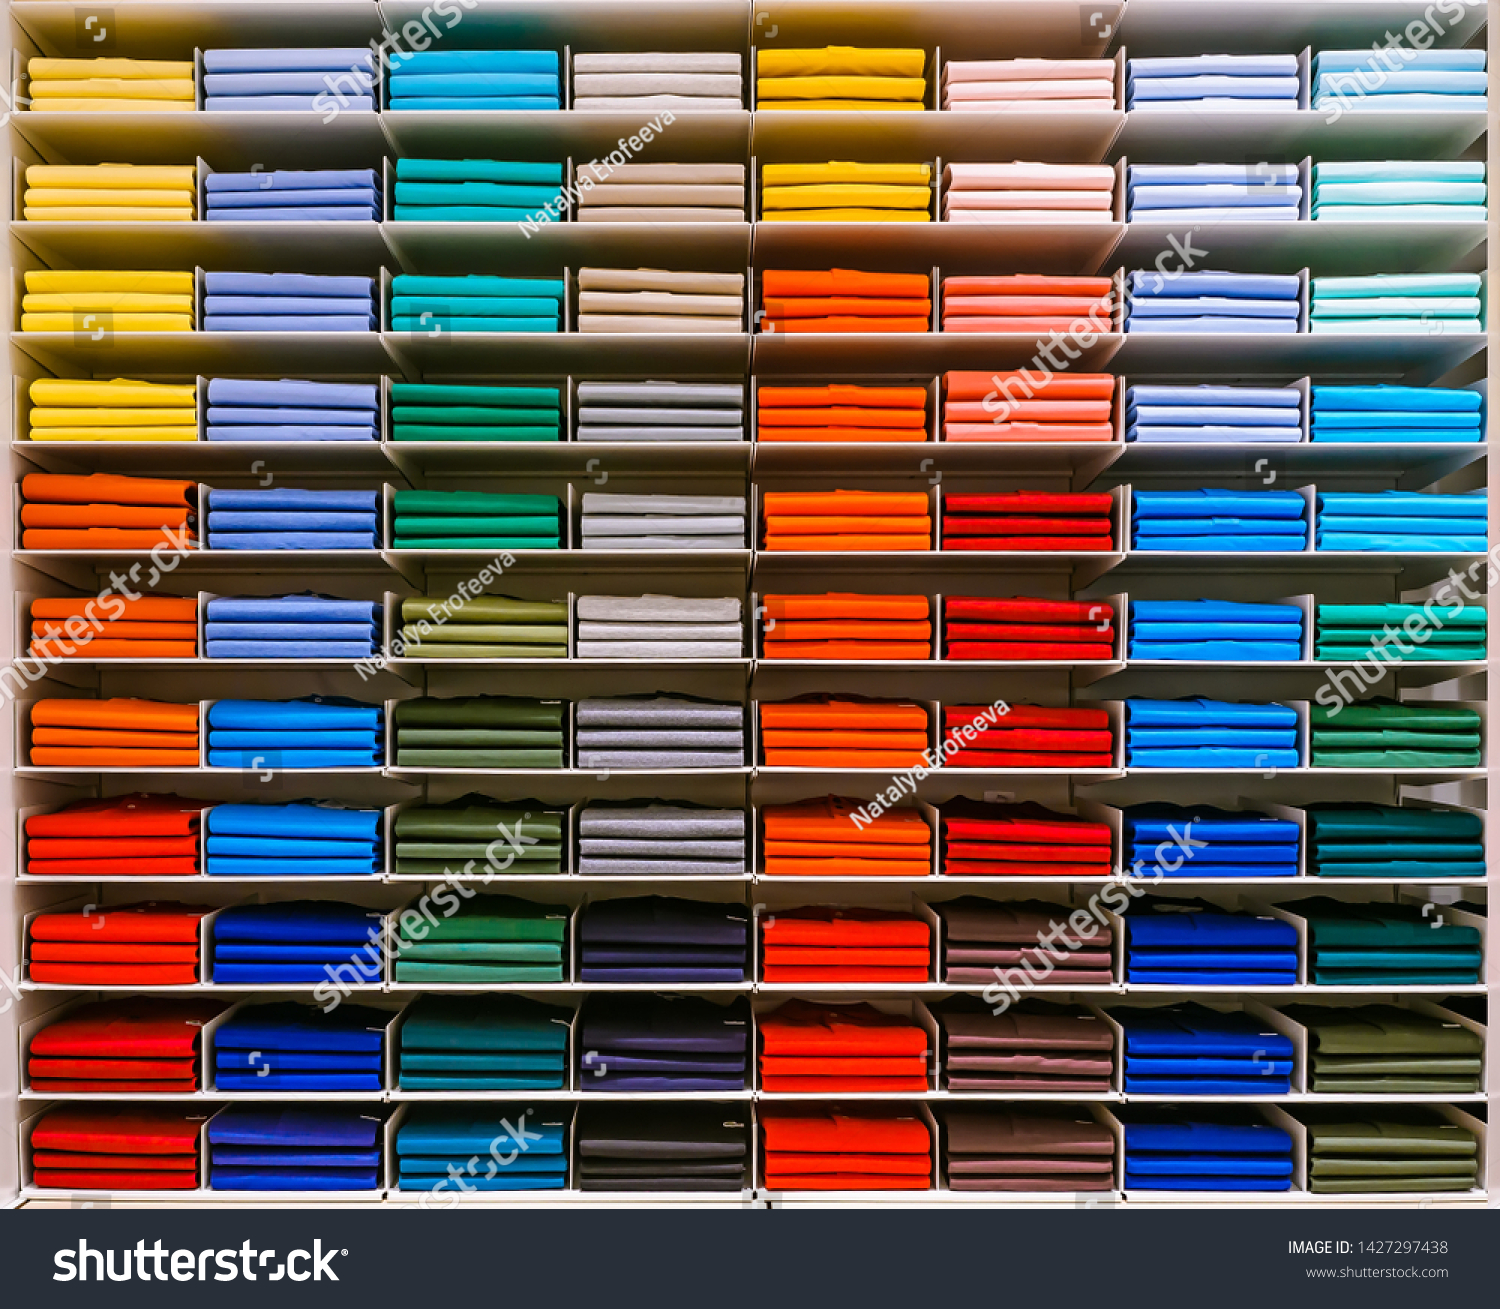 Colorful rainbow clothes background .Various vibrant color shirts perfectly folded on a shelf in the shop. Colored male clothes displayed in store. T-shirt of different color are neatly stacked in a #1427297438